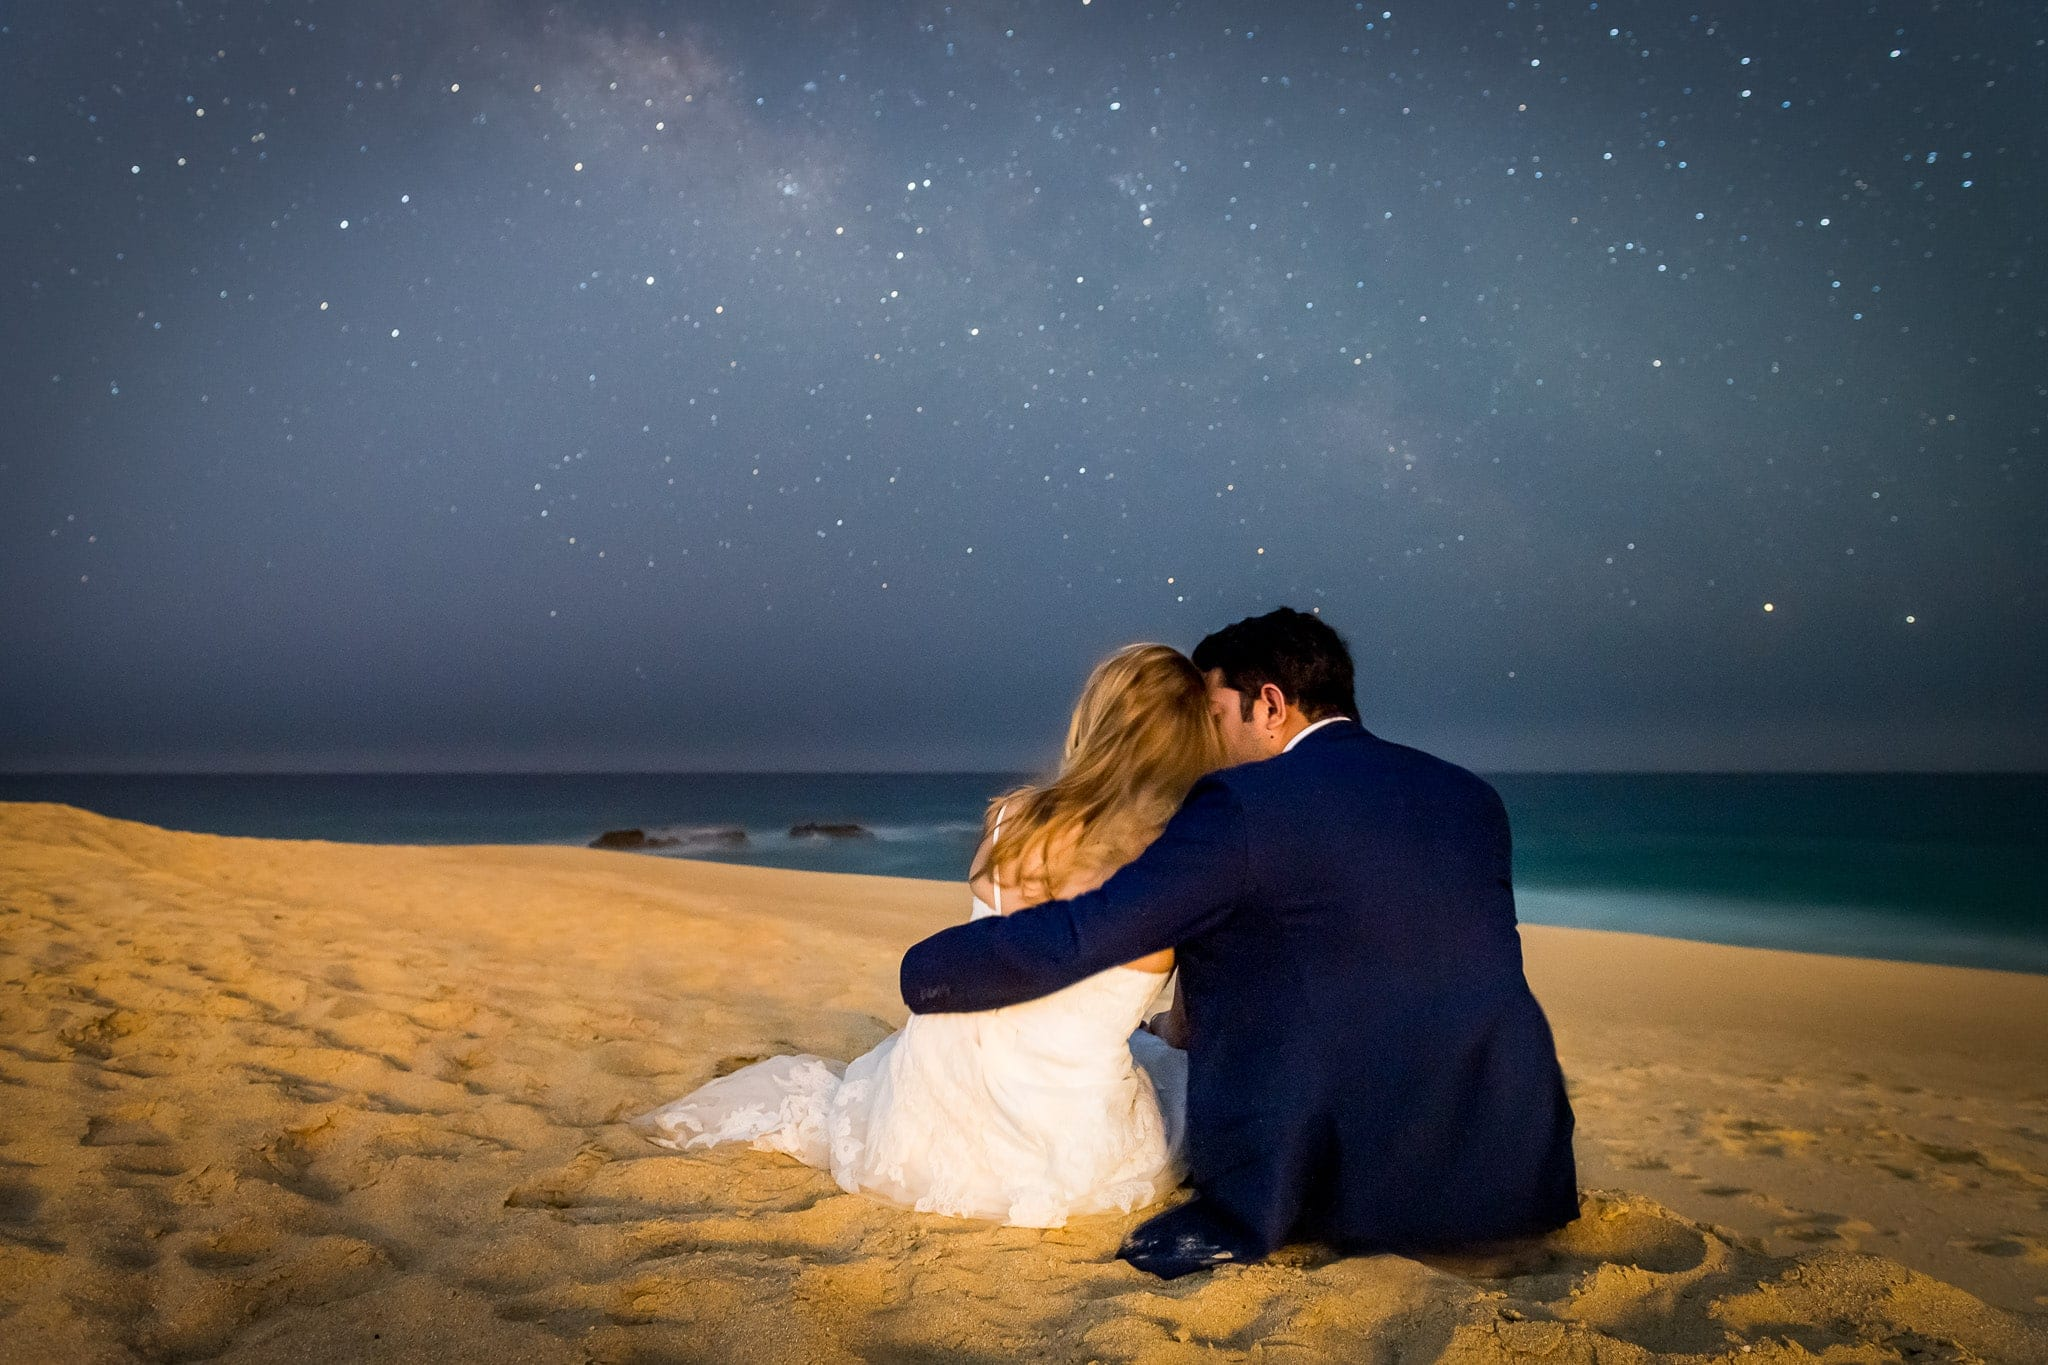 Newlywed bride and groom sitting on the sandy beach at night underneath a brilliant starry night sky at the end of their wedding day in Cabo San Lucas